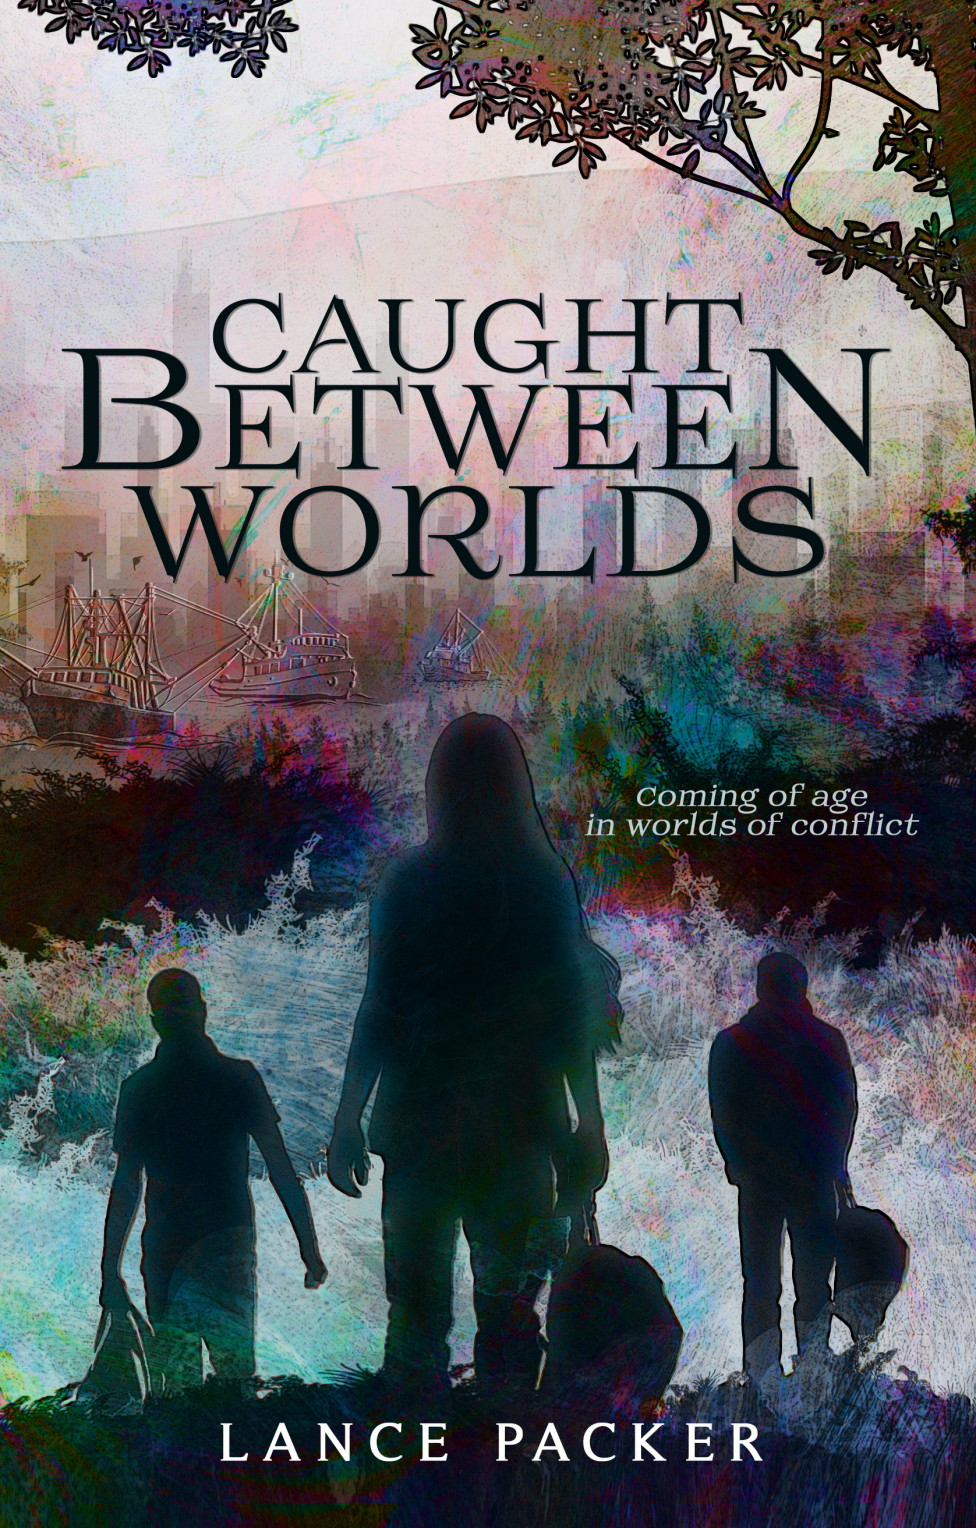 Caught Between Worlds by Lance Packer